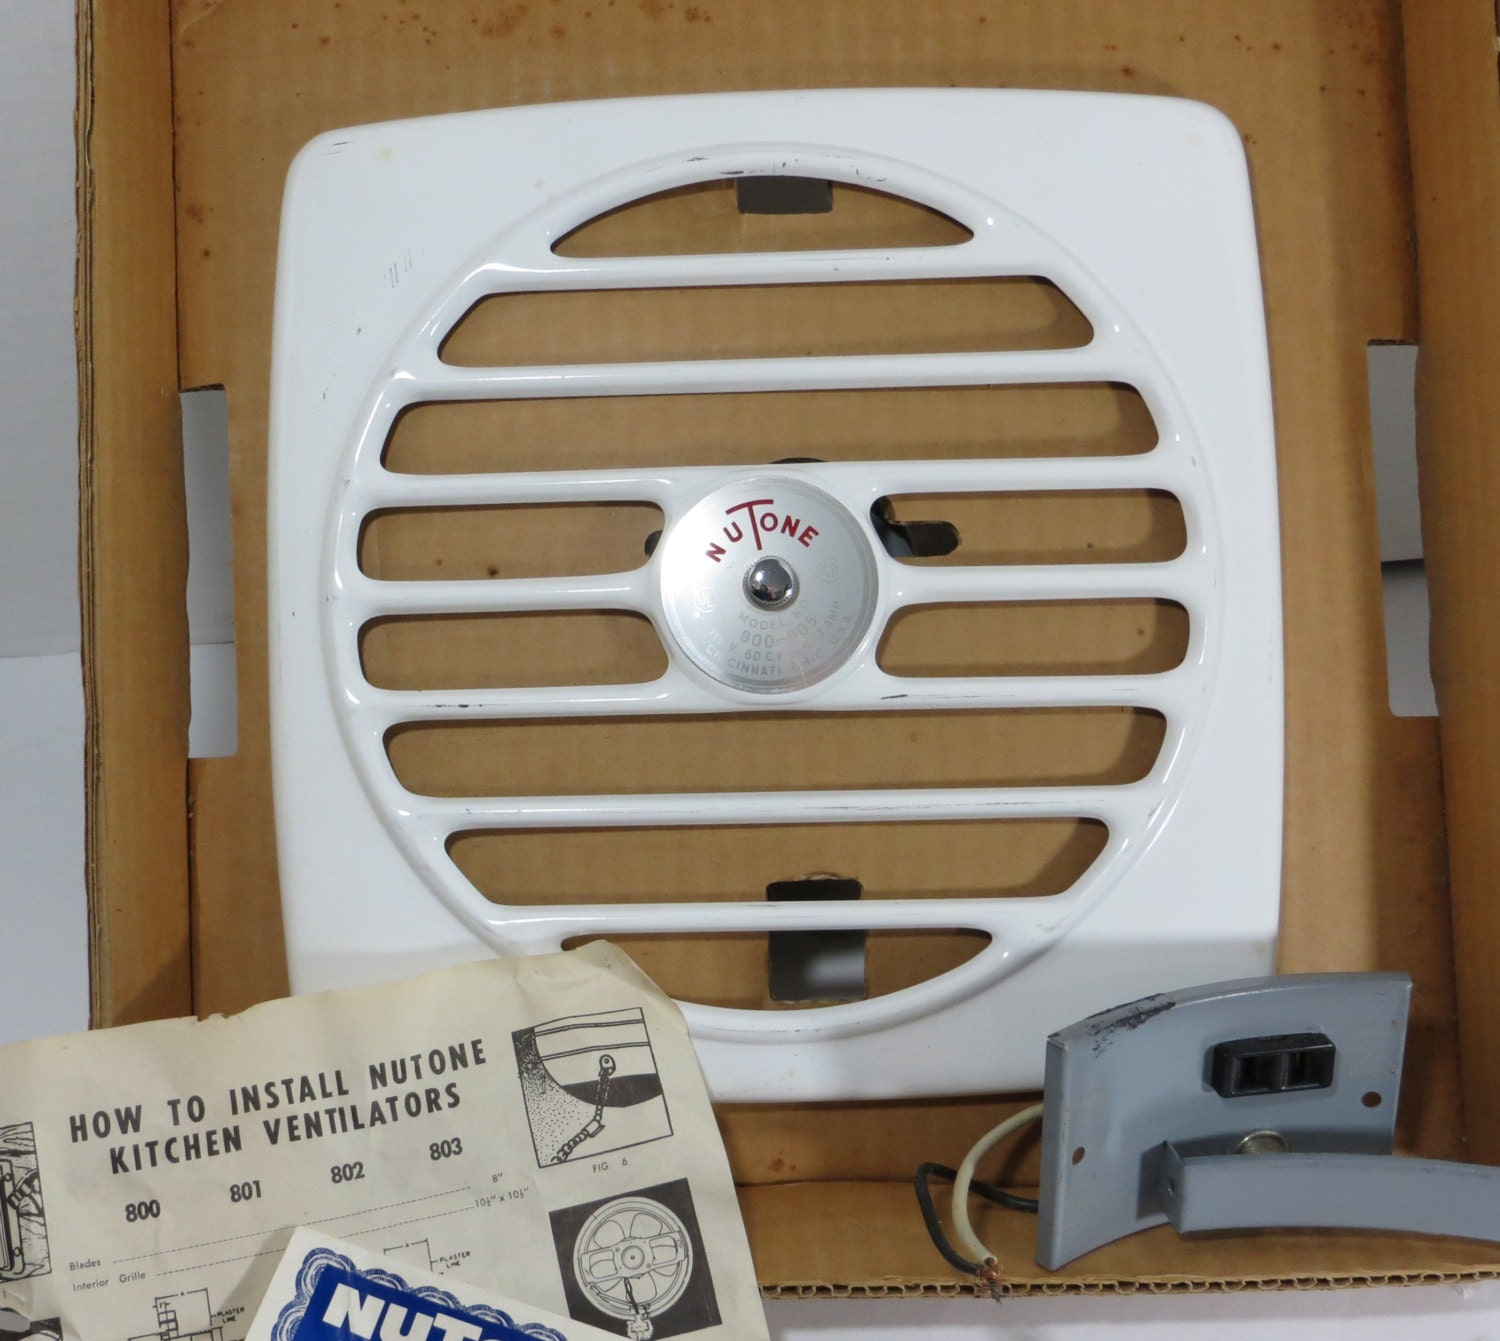 Nutone Kitchen Exhaust Fans: Vintage 1950s Kitchen Exhaust Fan Nutone 8 Inch By